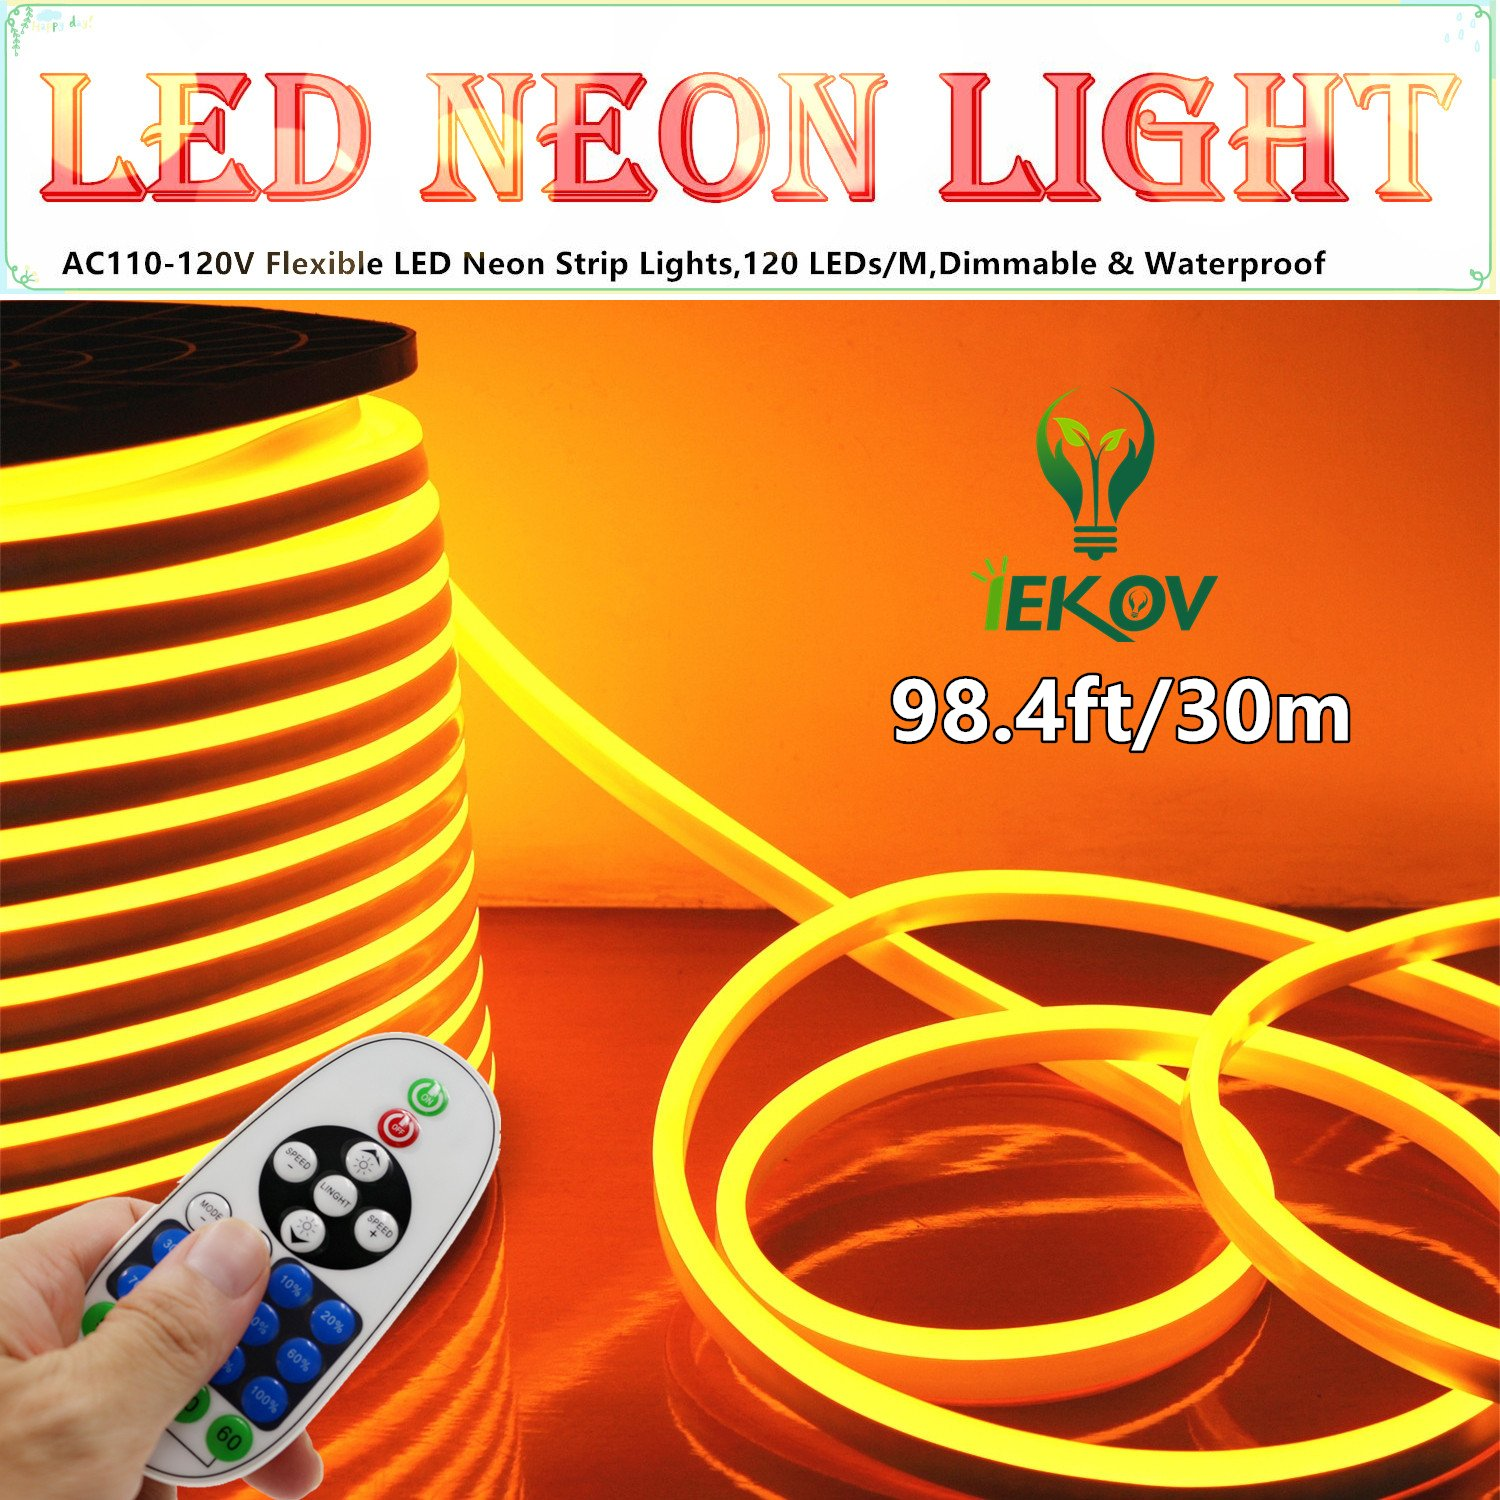 LED NEON LIGHT, IEKOV™ AC 110-120V Flexible LED Neon Strip Lights, 120 LEDs/M, Dimmable, Waterproof 2835 SMD LED Rope Light + Remote Controller for Party Decoration (98.4ft/30m, Golden Yellow) by IEKOV